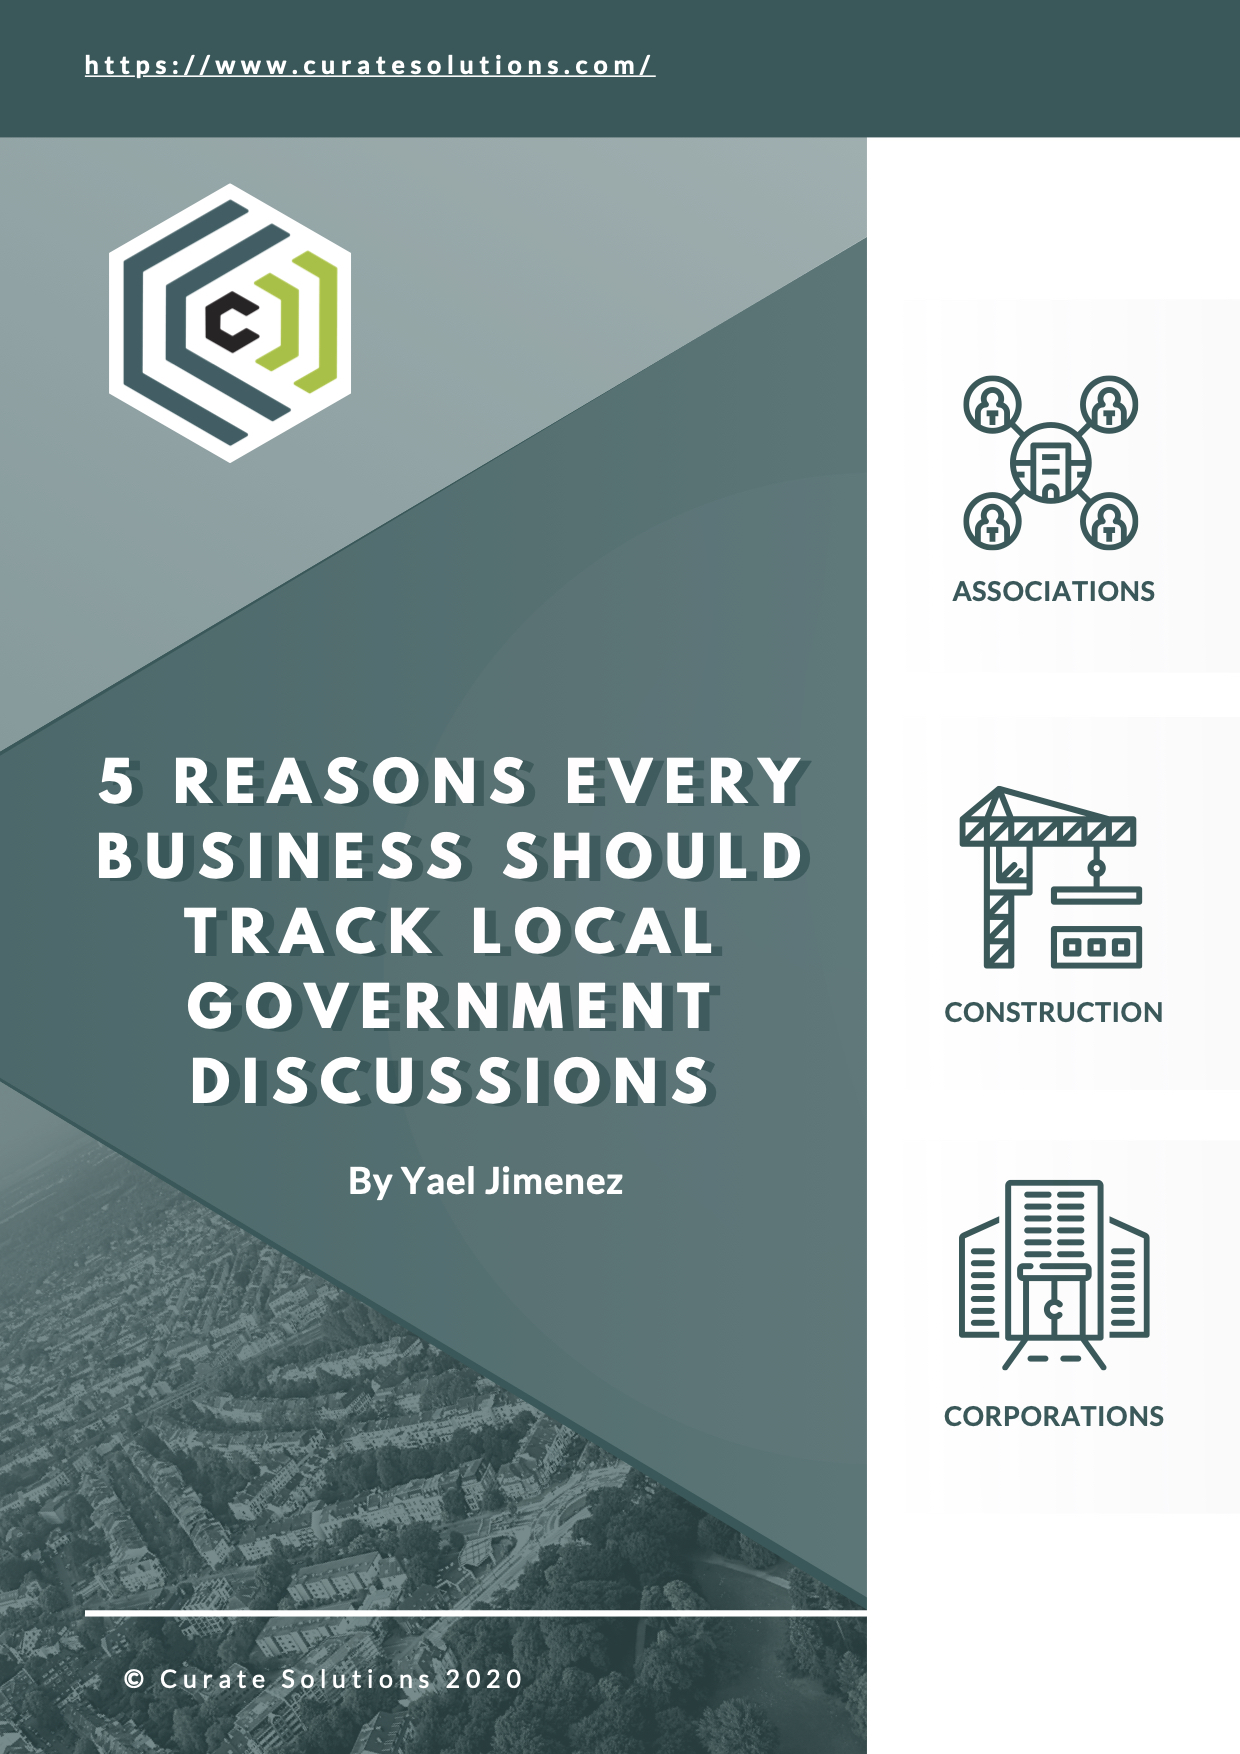 5 Reasons Every Business Should Track Local Government Discussions-2